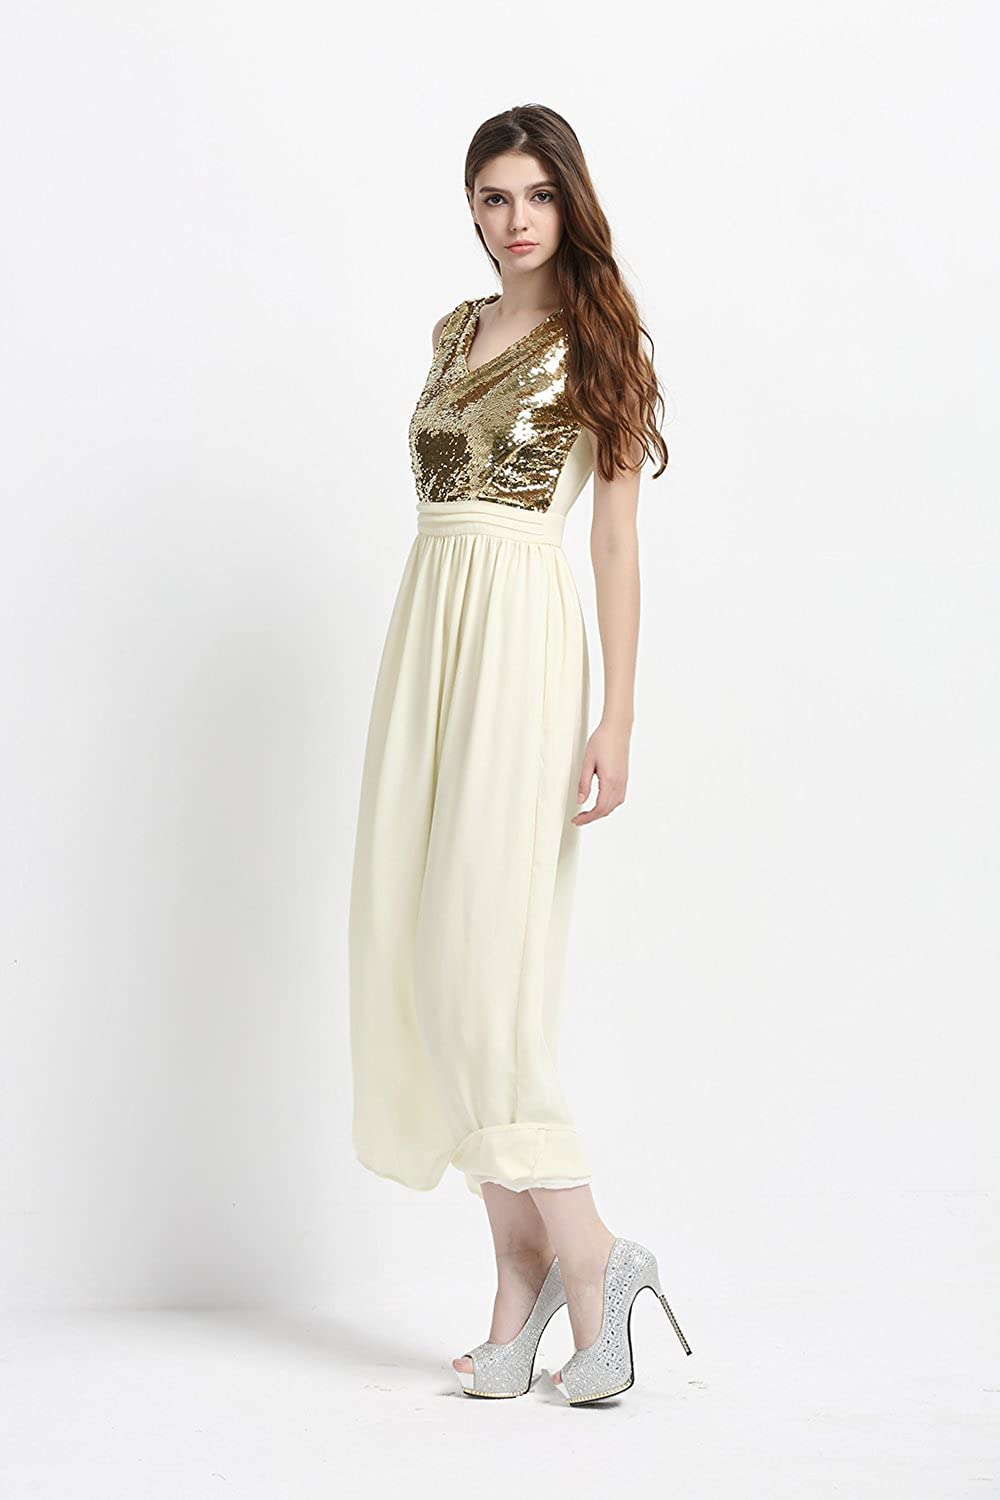 RichcocoClassic Womens Sequined Evening Dress